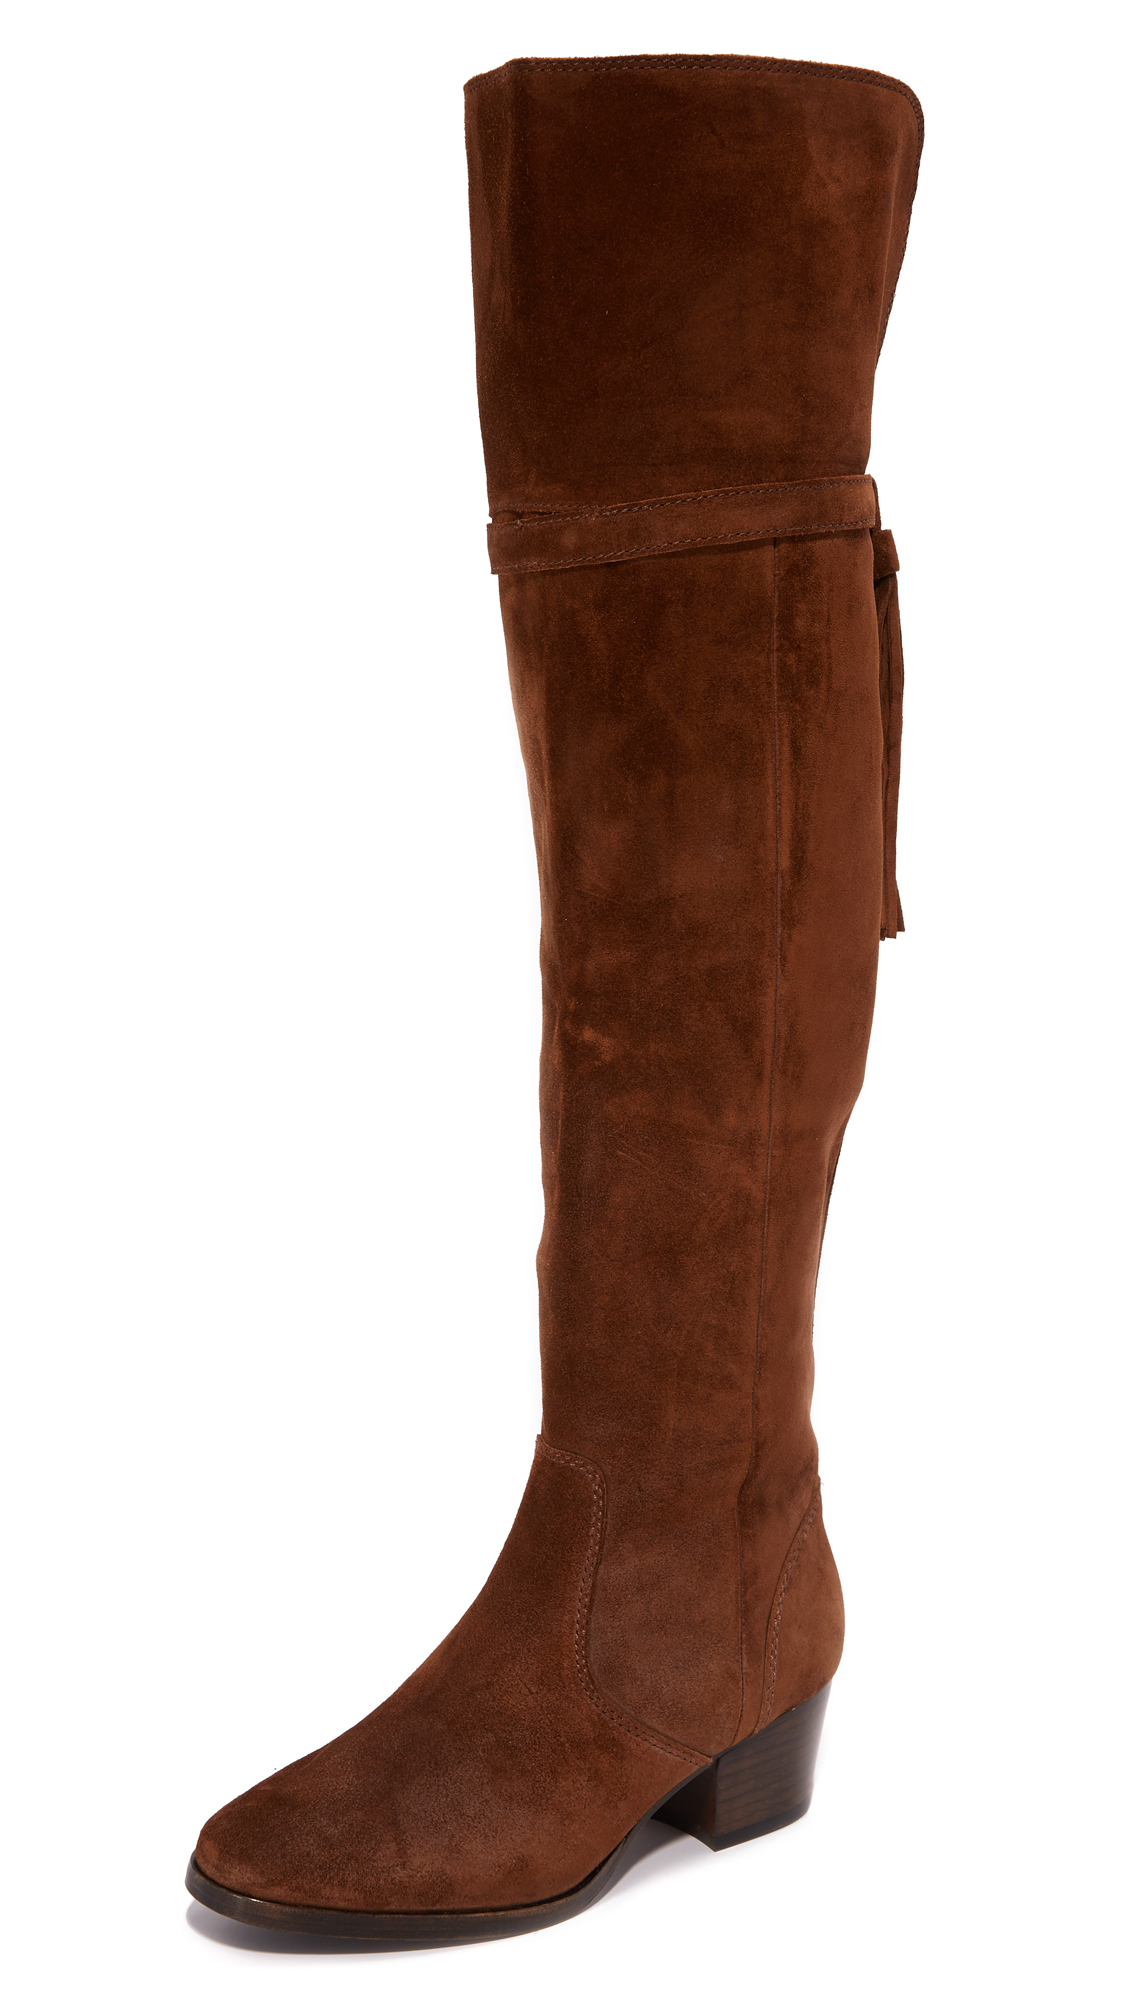 Frye Clara Tassel Over The Knee Boots - Wood at Shopbop